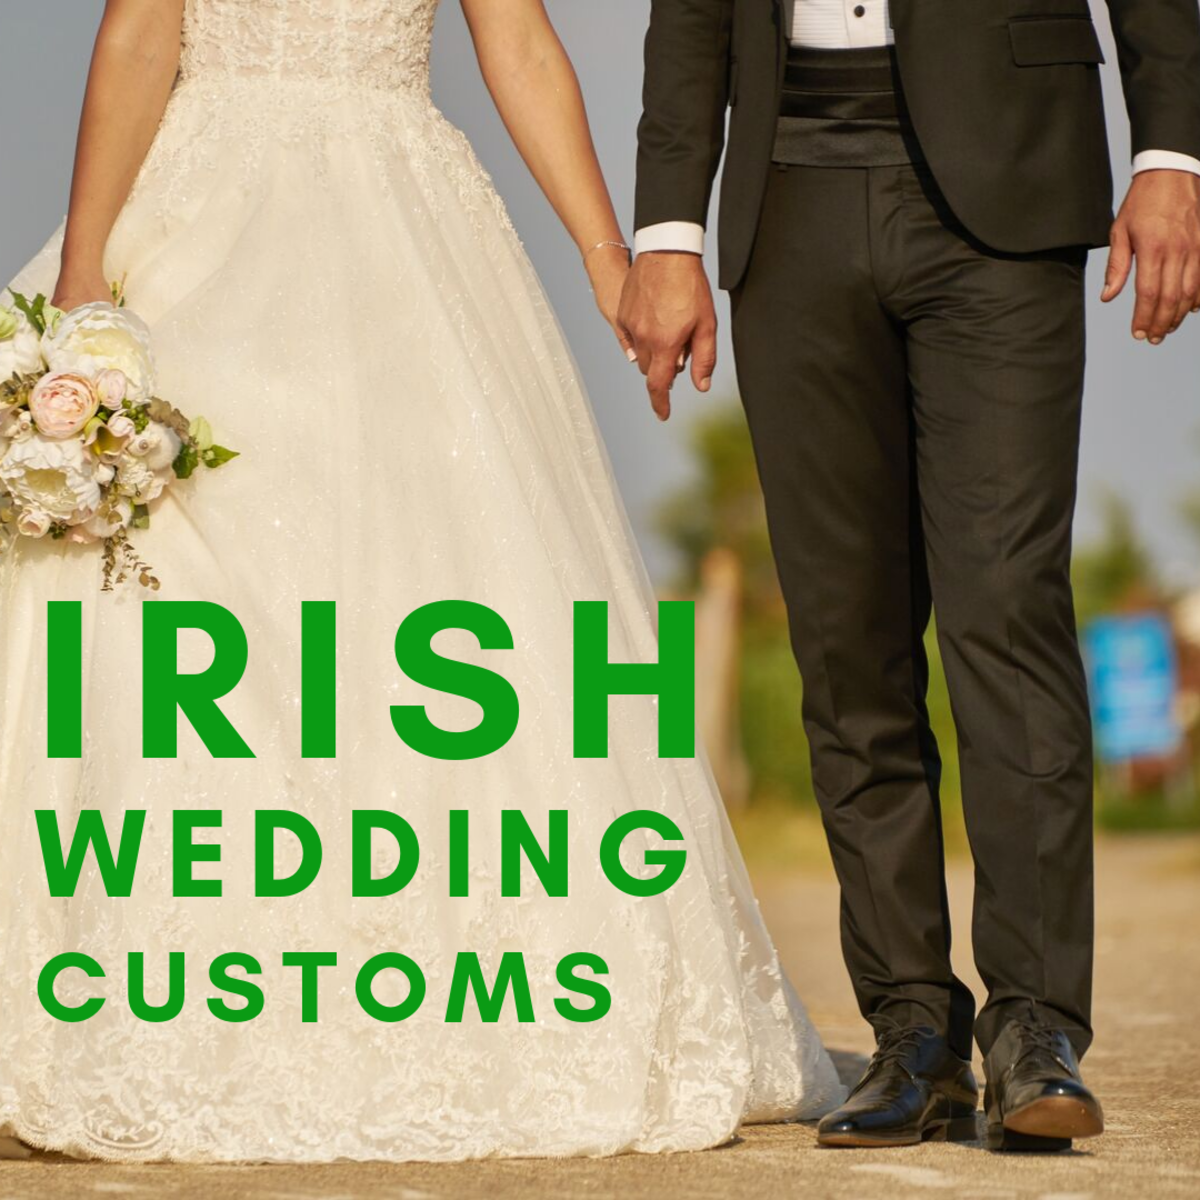 Irish Wedding Customs